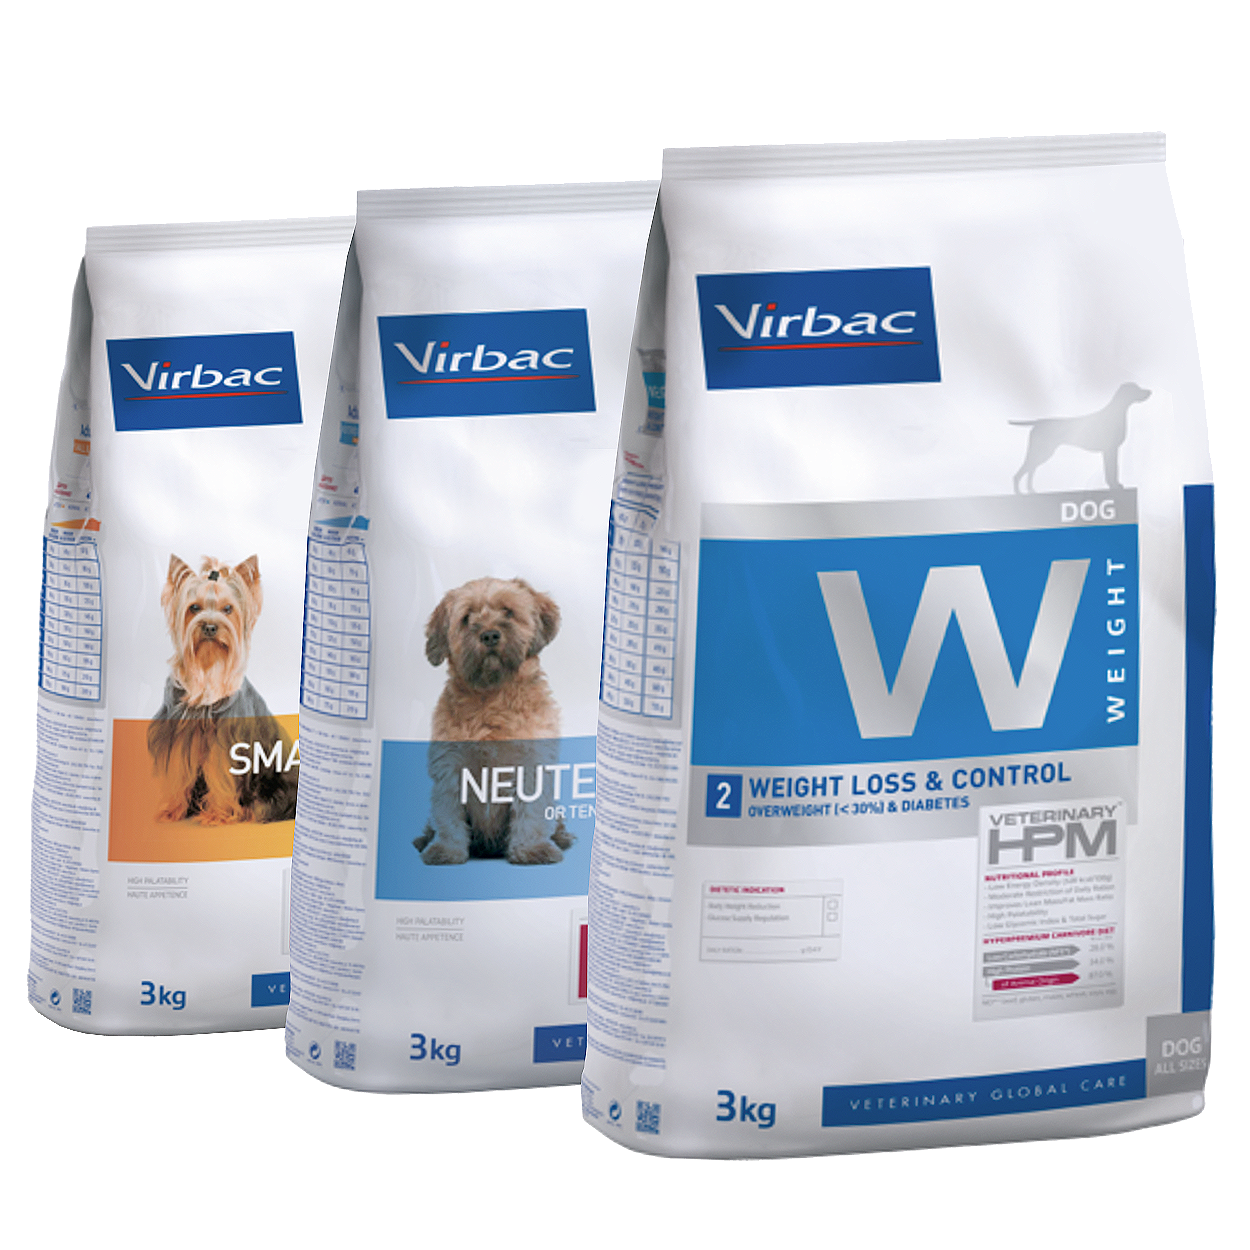 Virbac food available to buy at Pattenden Vets.